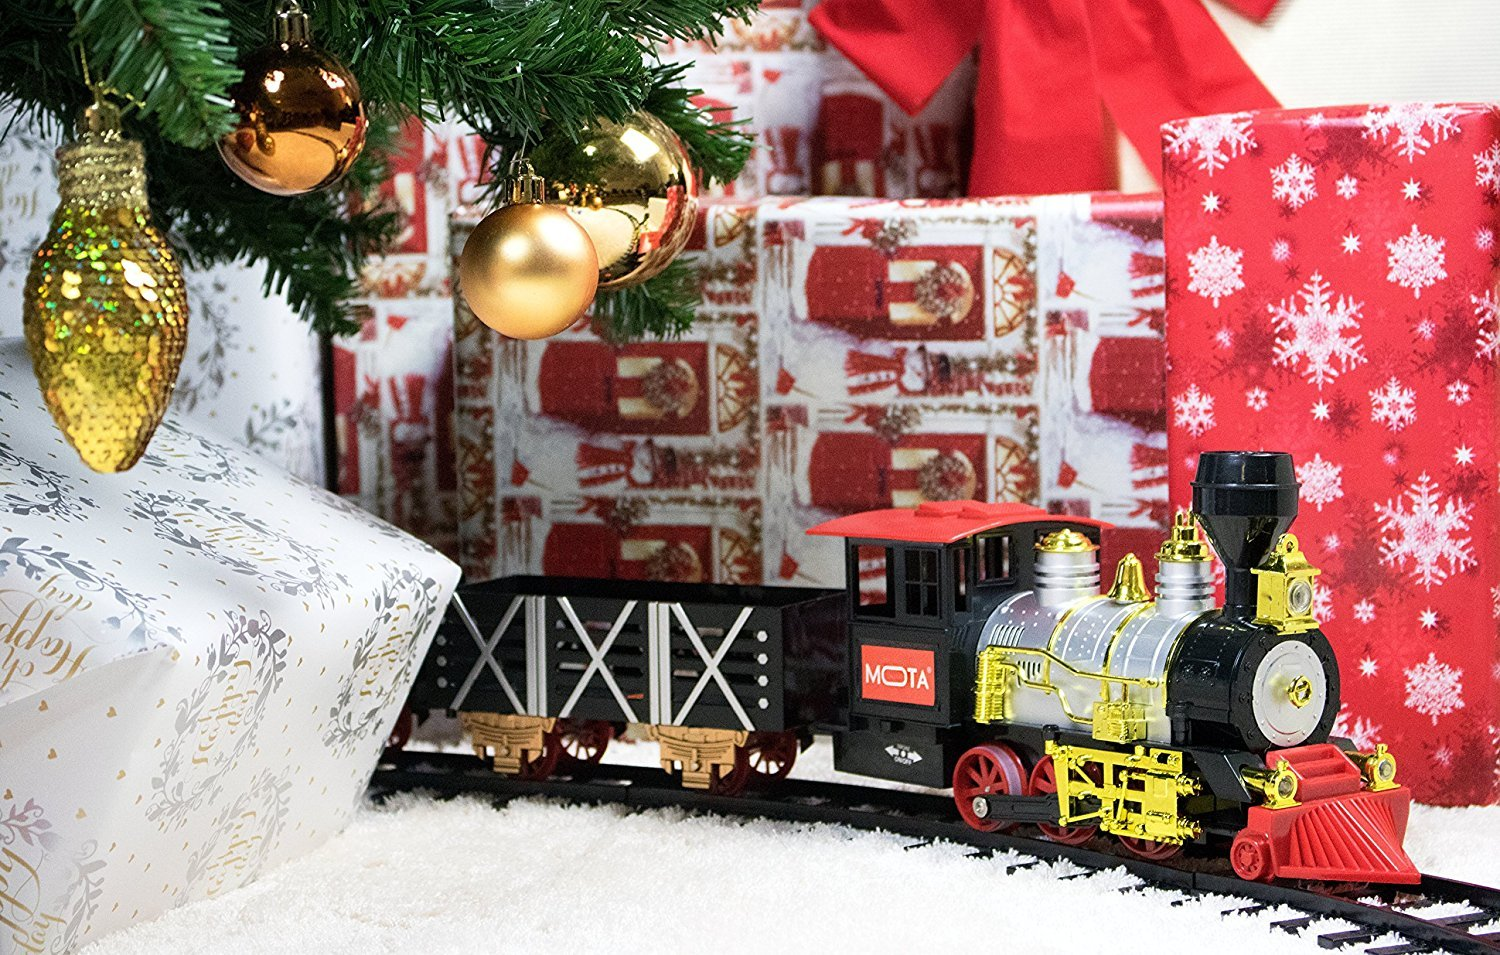 MOTA Holiday Christmas Train S...